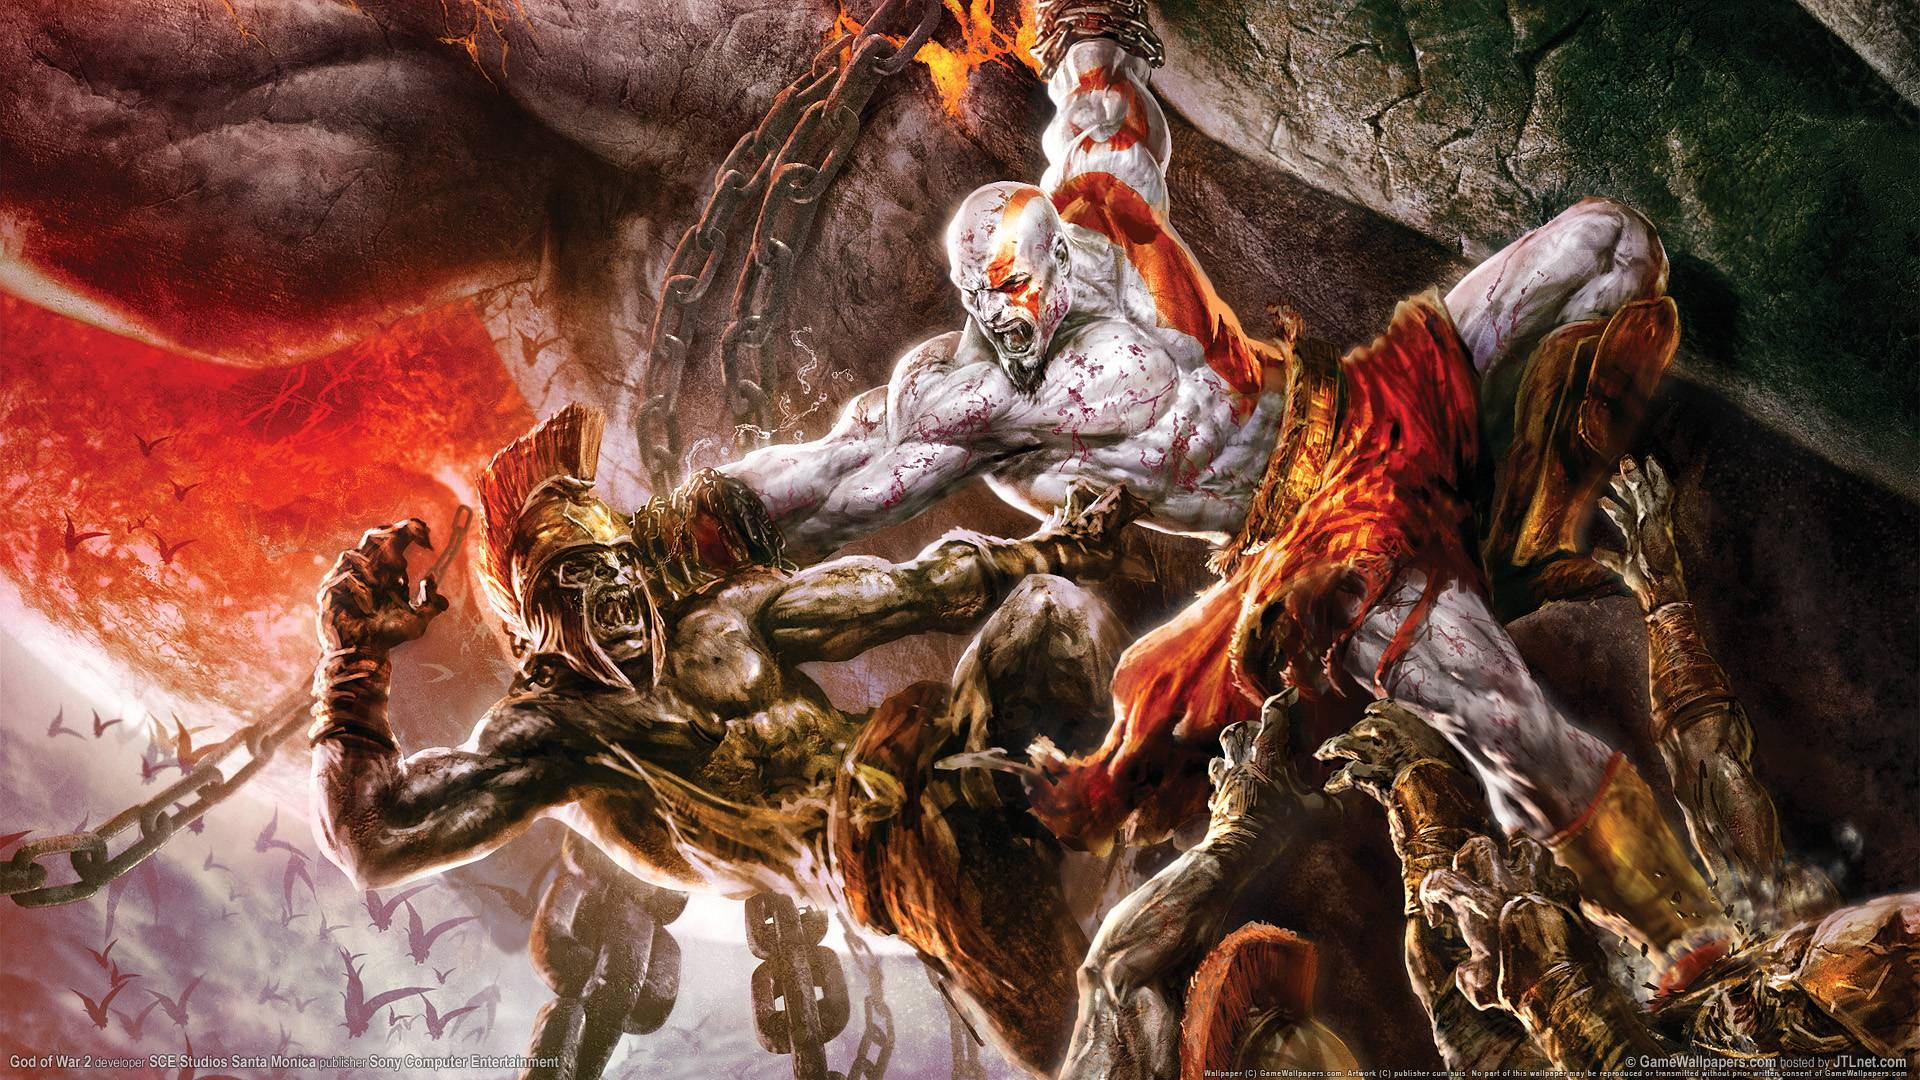 God Of War 3 Wallpaper HD Download